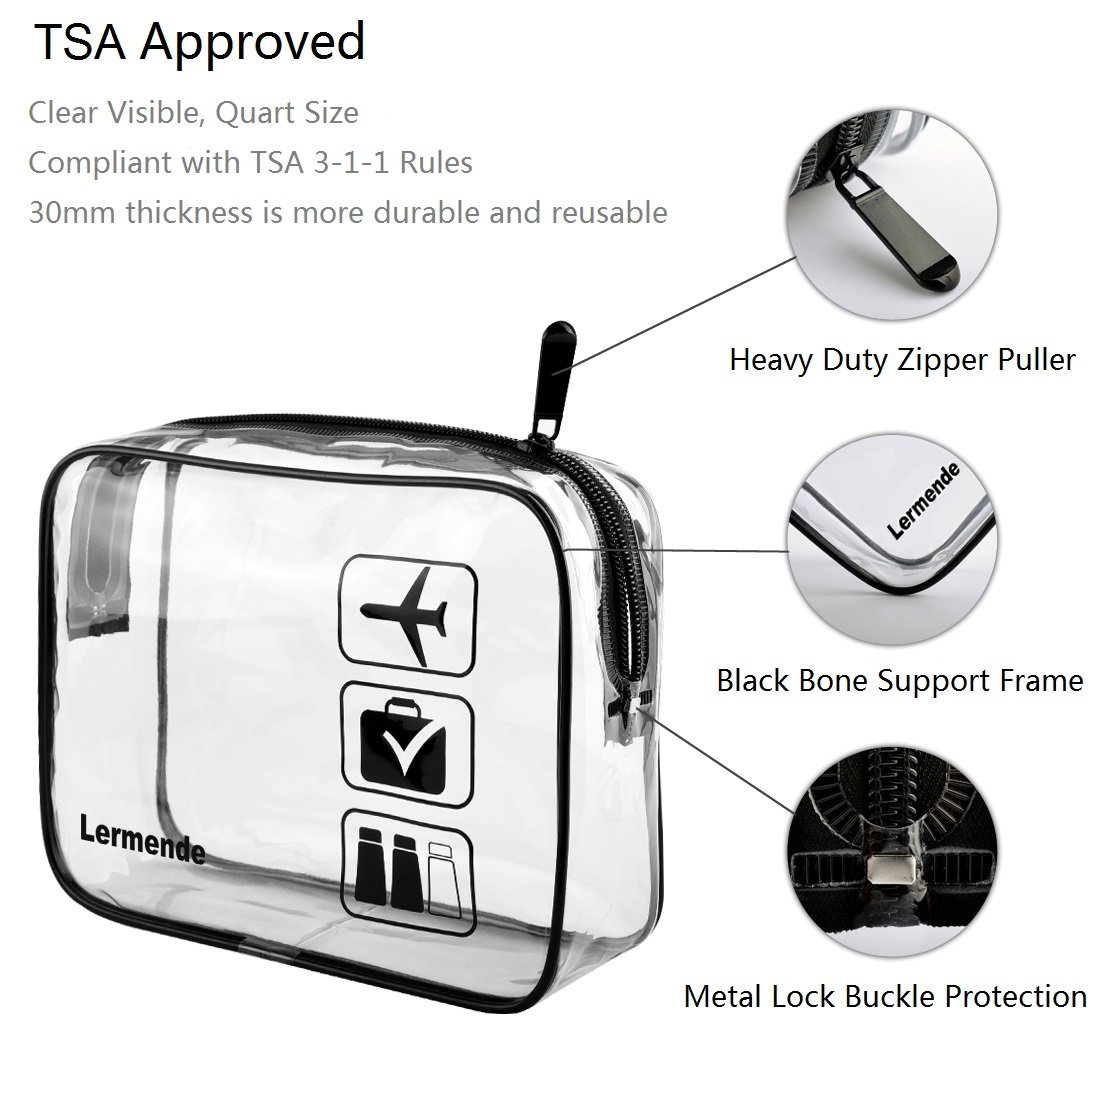 3pcs Lermende TSA Approved Toiletry Bag with Zipper Travel Luggage Pouch Carry On Clear Airport Airline Compliant Bag Travel Cosmetic Makeup Bags - Black by Lermende (Image #3)